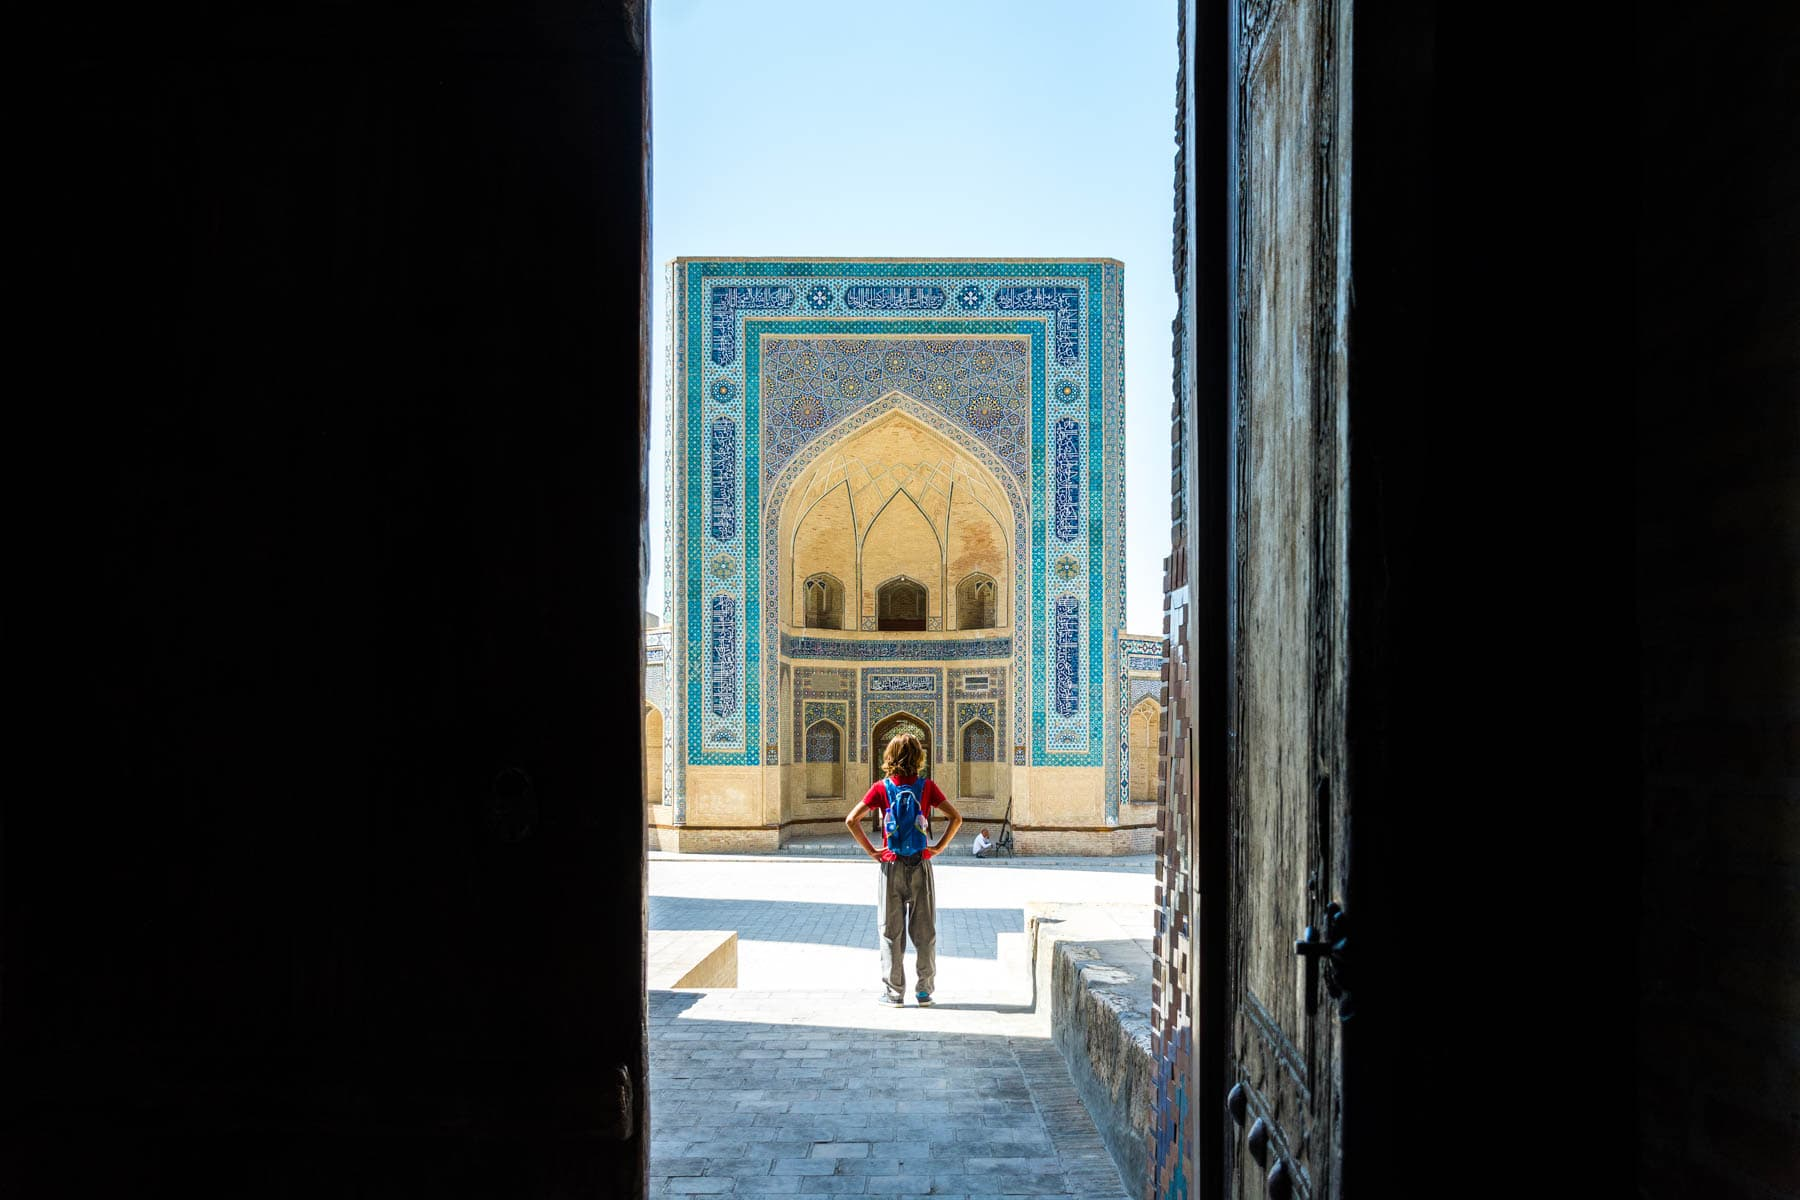 A boy Looking through doors to the Kaylan mosque in Bukhara